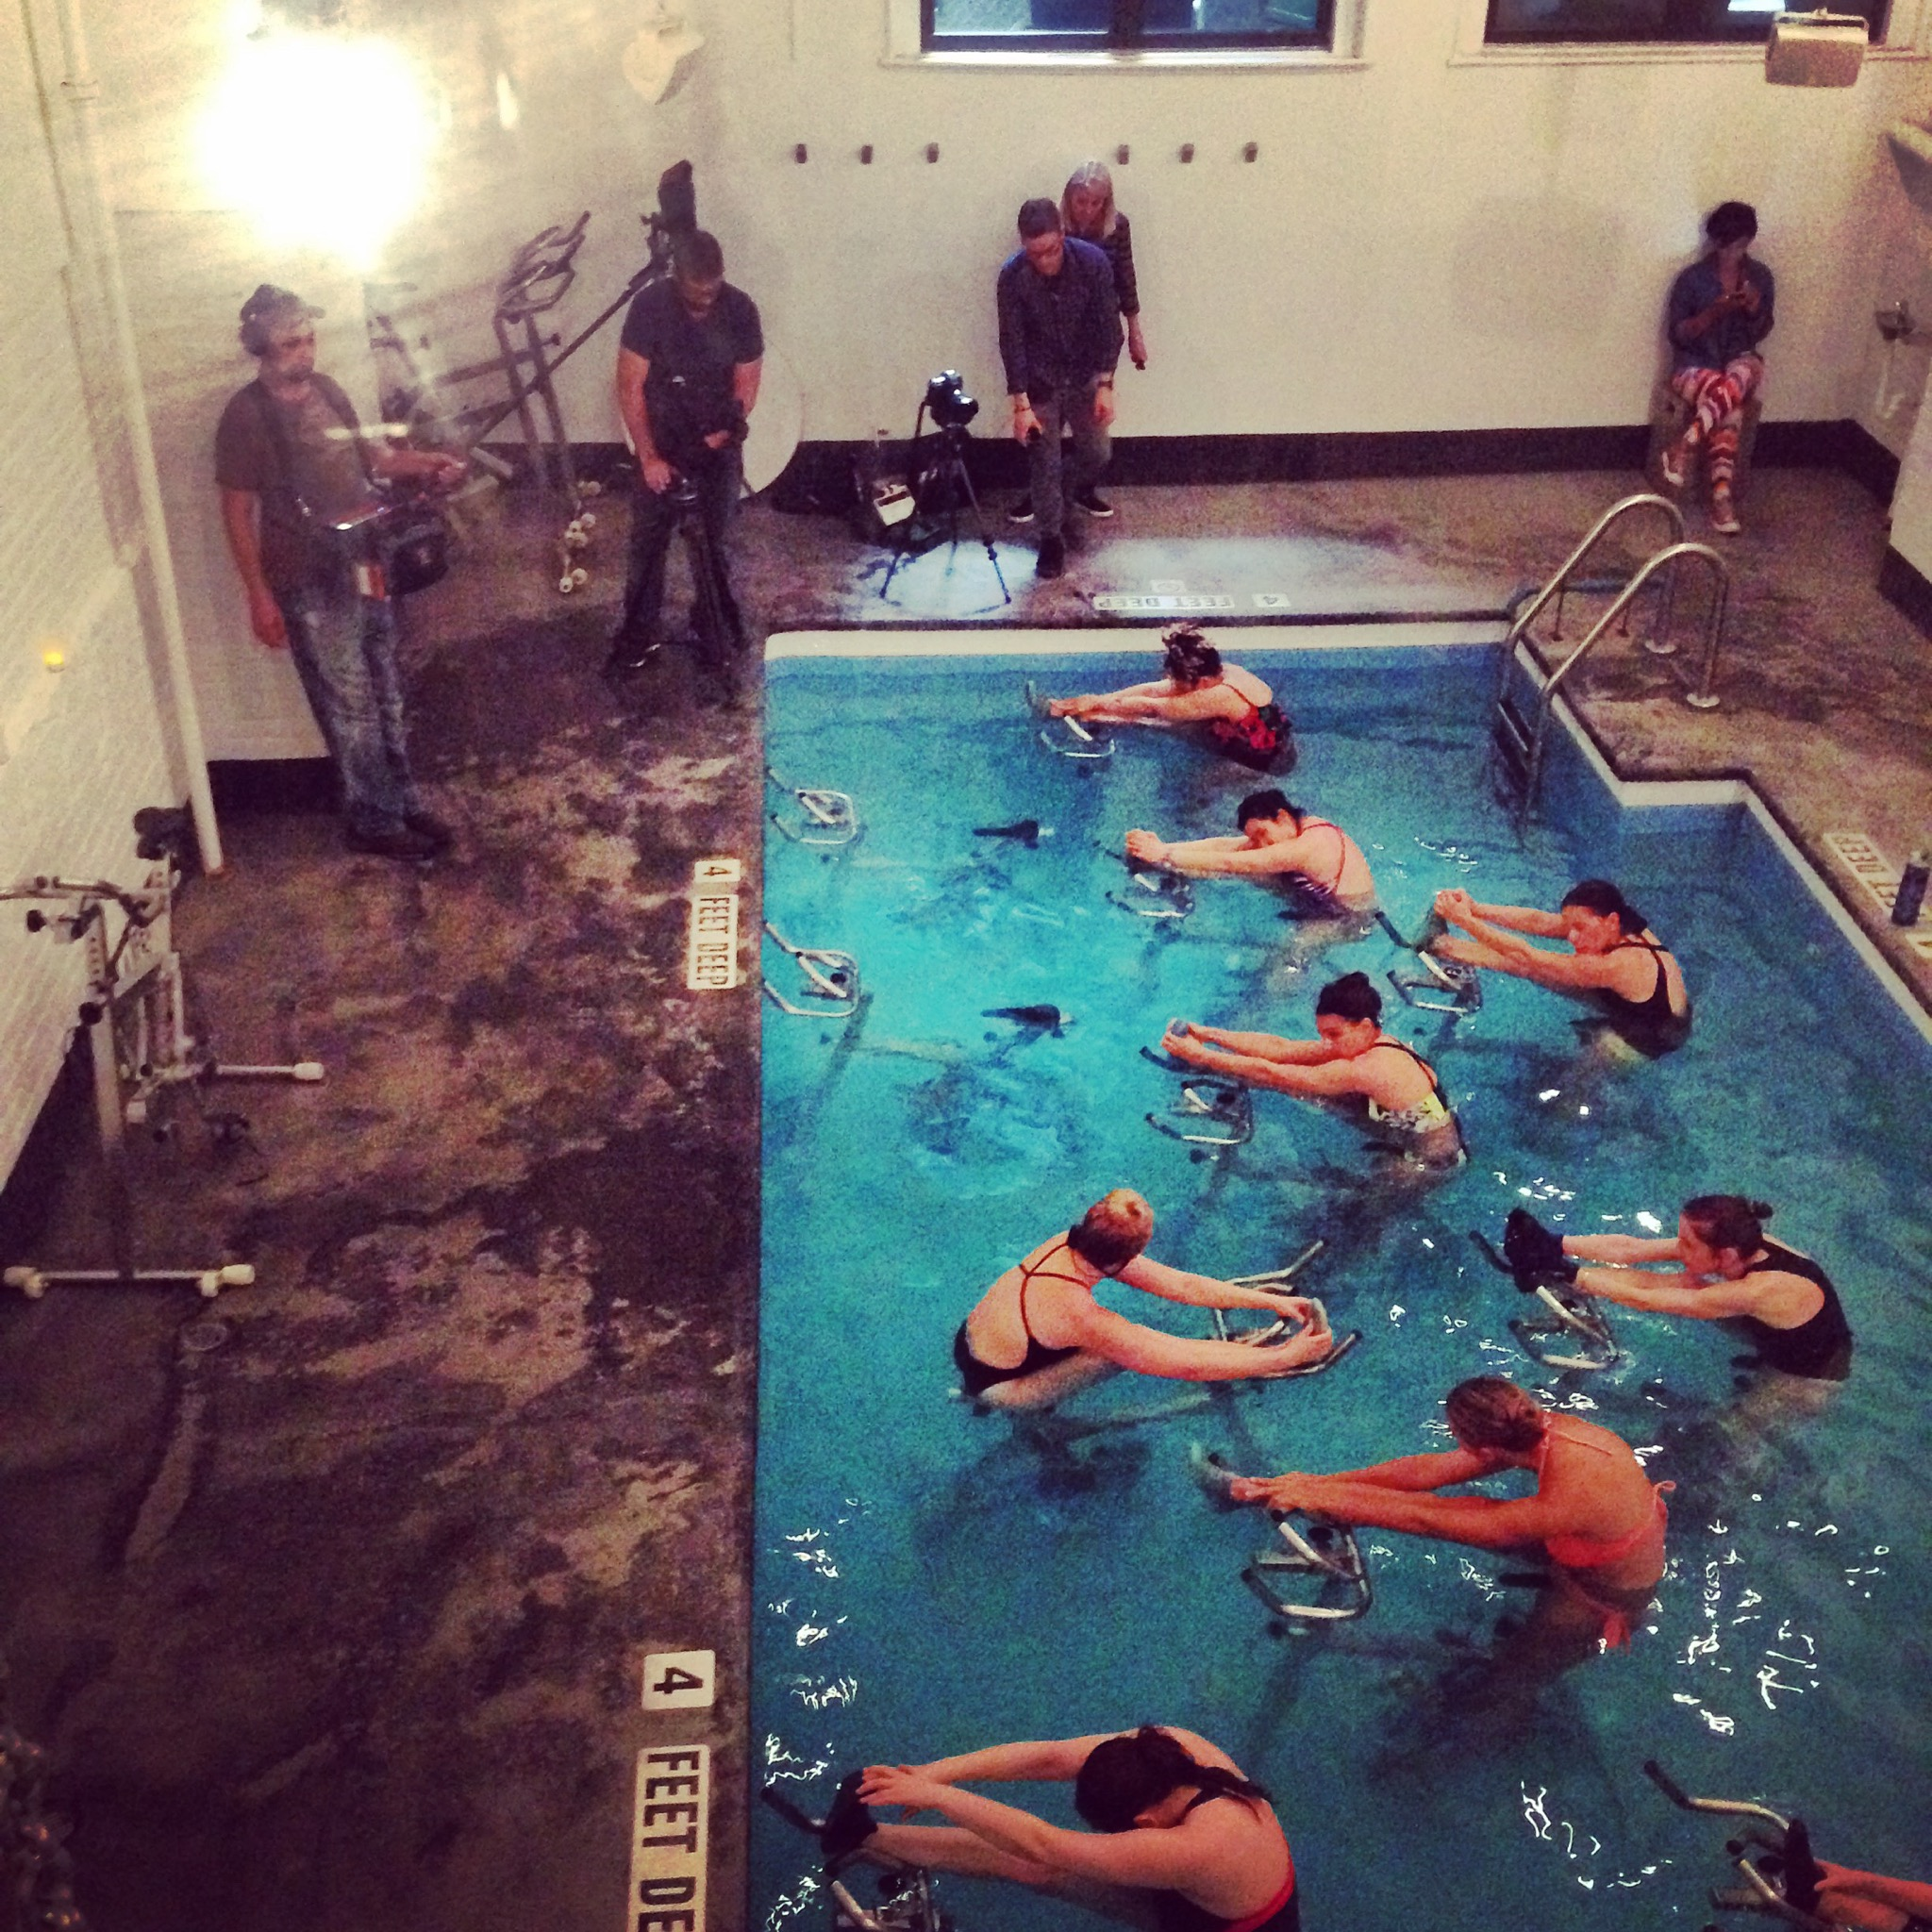 IN THE NEWS : My work as an Aquacyling trainer was featured in the Today Show, Tennis Channel, Reach MD, YogaCity, Rate Your Burn. Full articles featured  here .